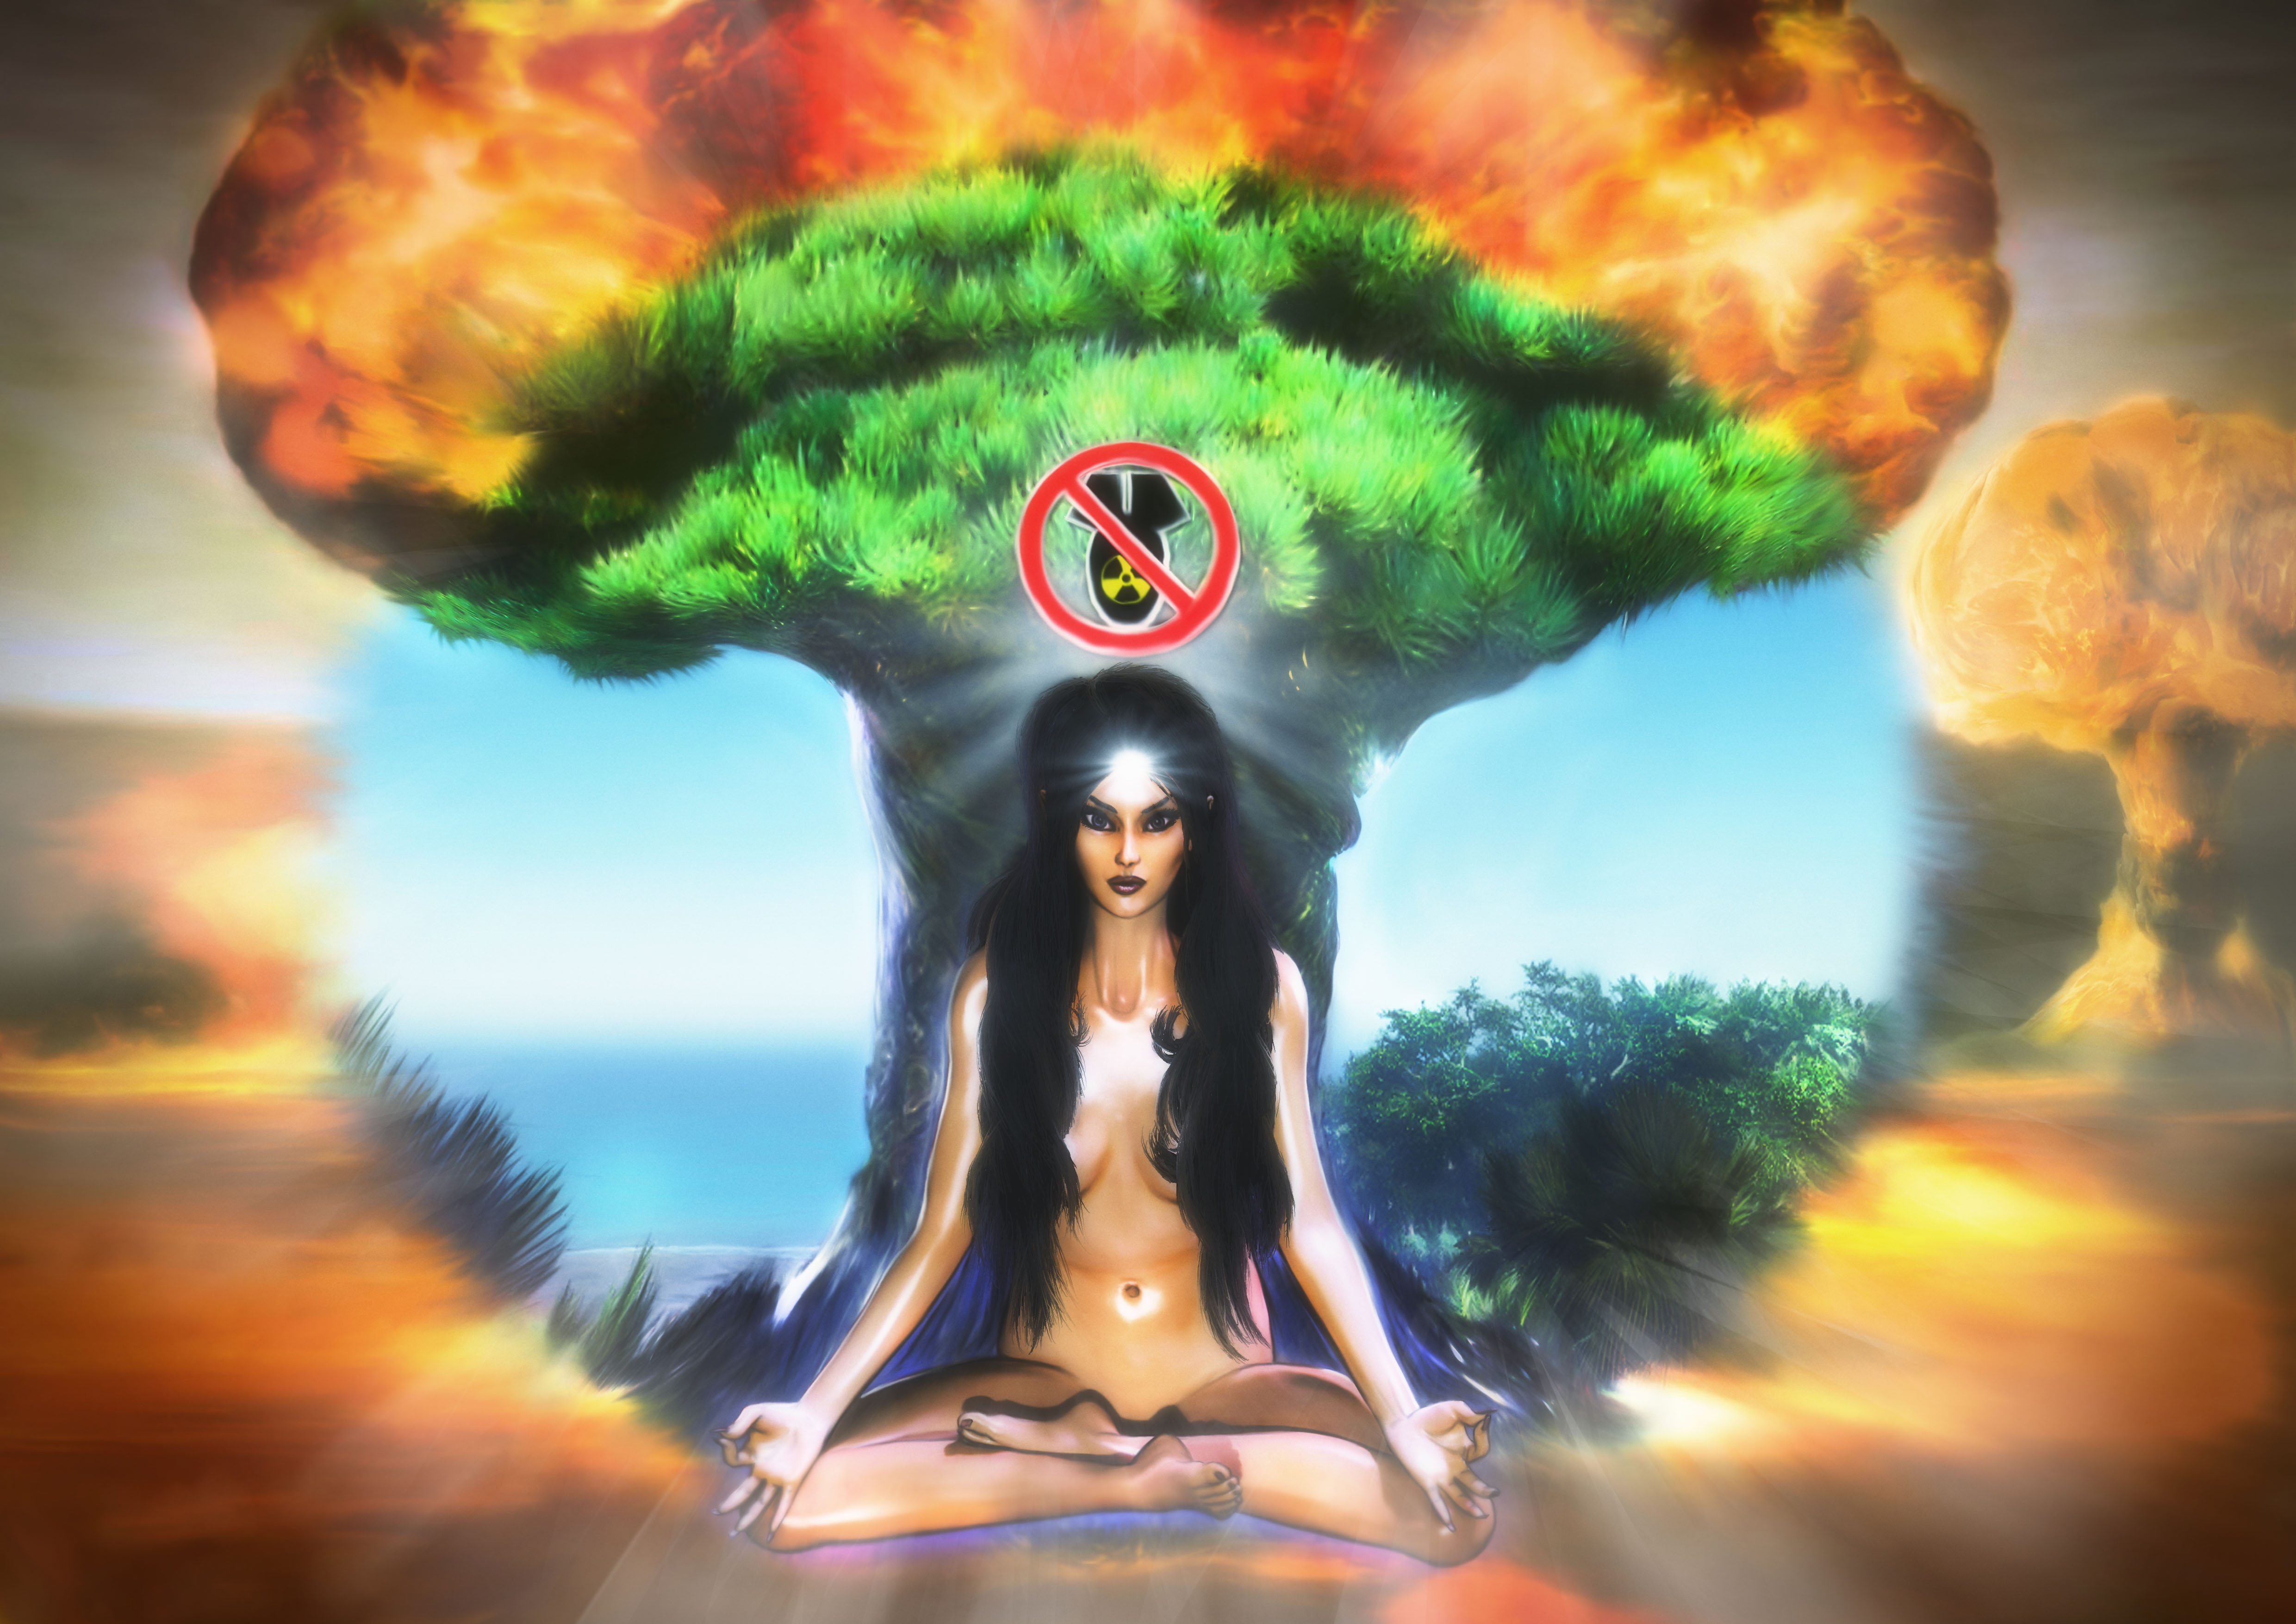 Ban Nuclear Nuclear Weapons, Meditate for Peace